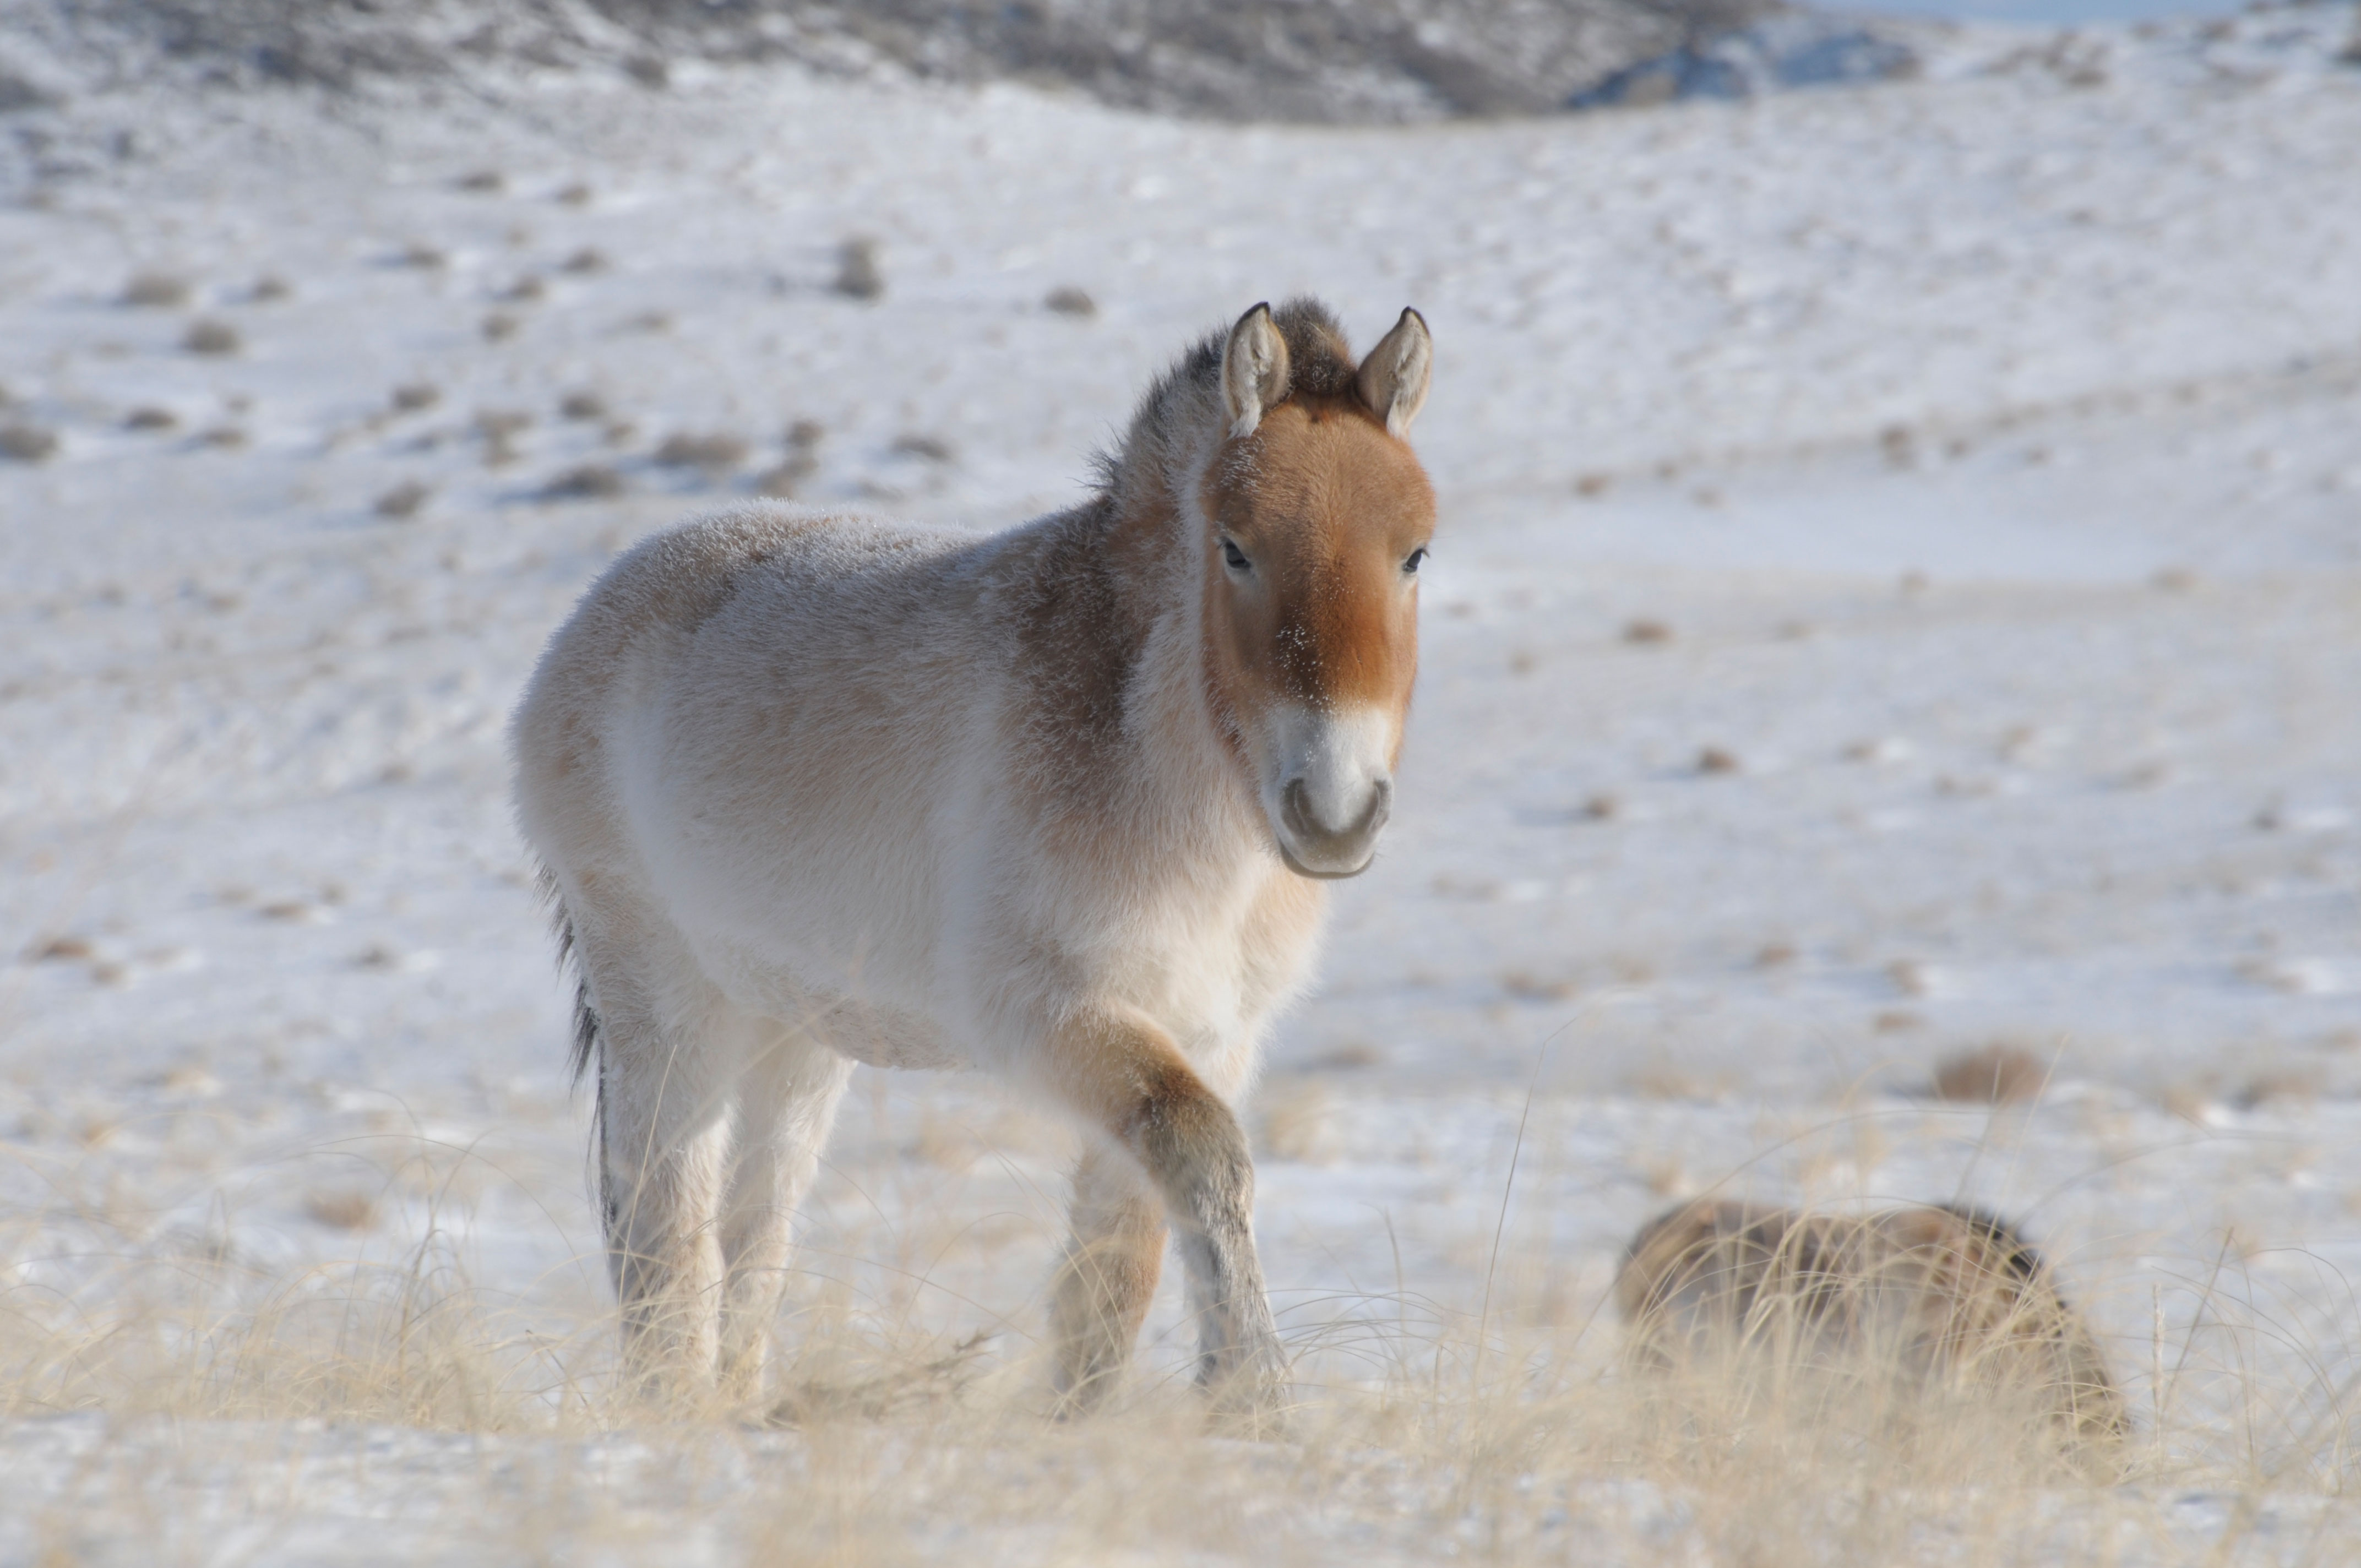 Its Genome Was Sequenced Last Year But >> A 700.000 year old horse gets its genome sequenced – University of Copenhagen